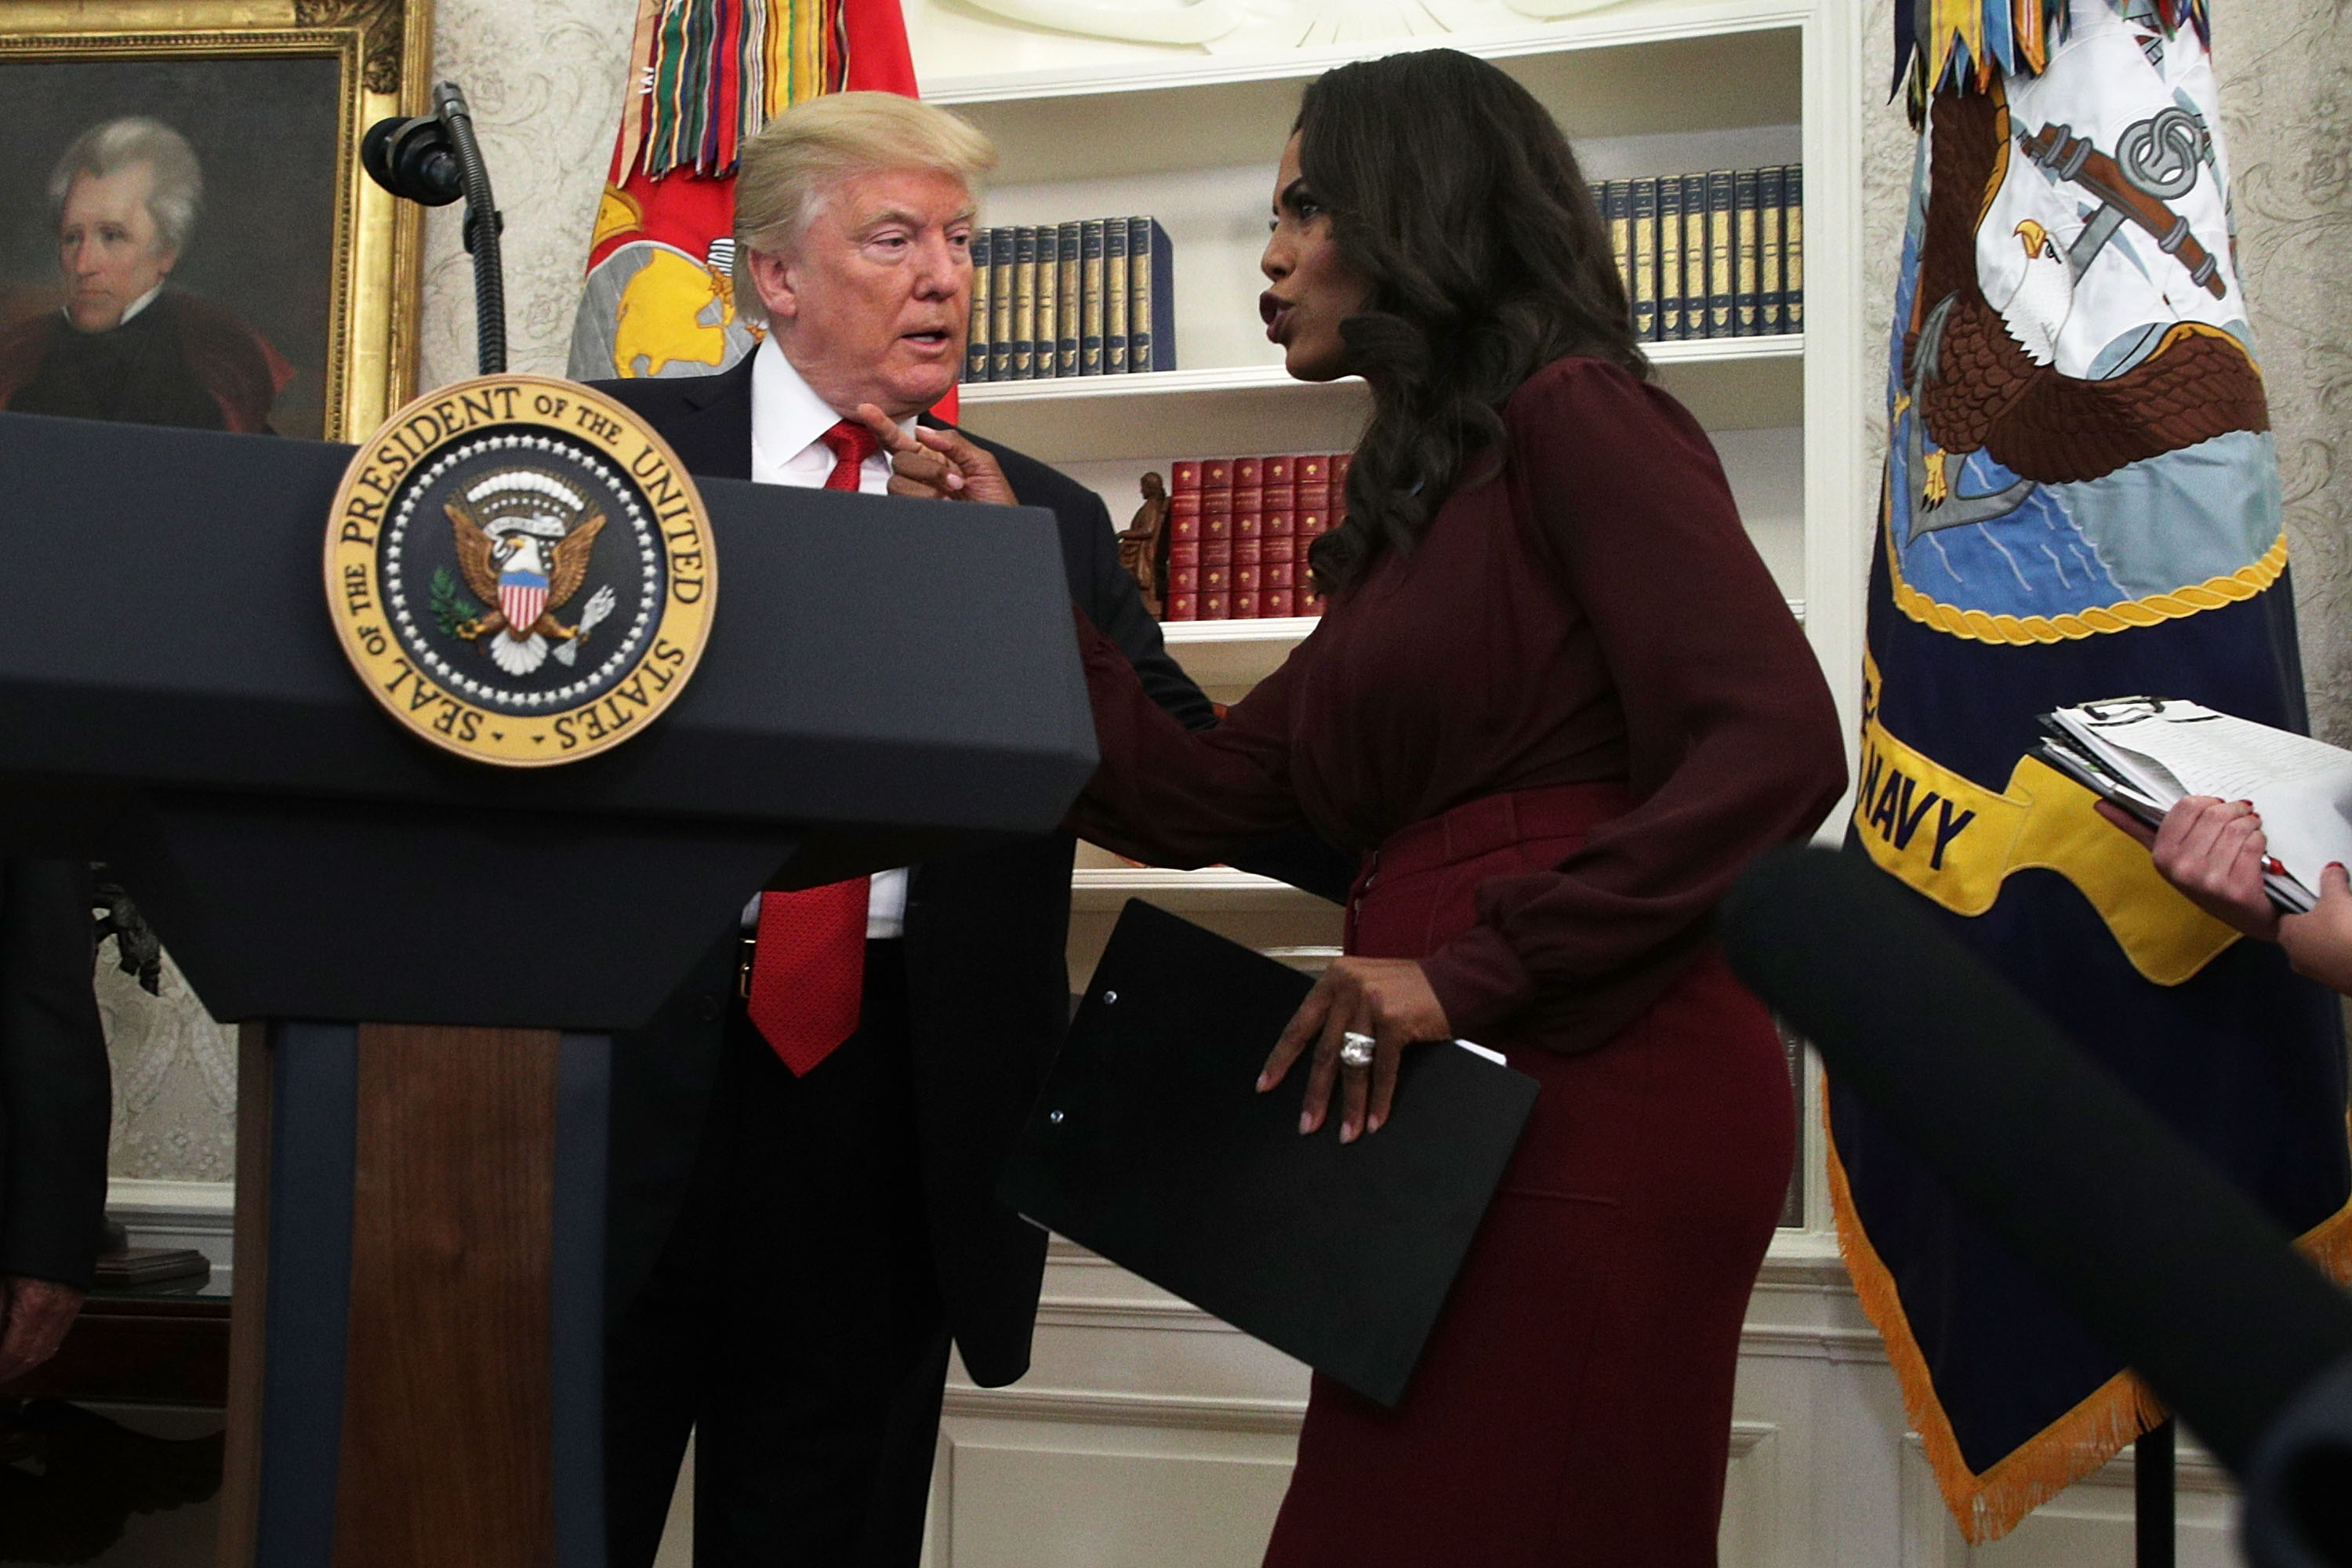 U.S. President Donald Trump listens to Director of Communications for the White House Public Liaison Office Omarosa Manigault during an event in the Oval Office of the White House October 24, 2017 in Washington, DC. President Trump honored the eight winners of the National Minority Enterprise Development Week Awards Program during the Oval Office event.